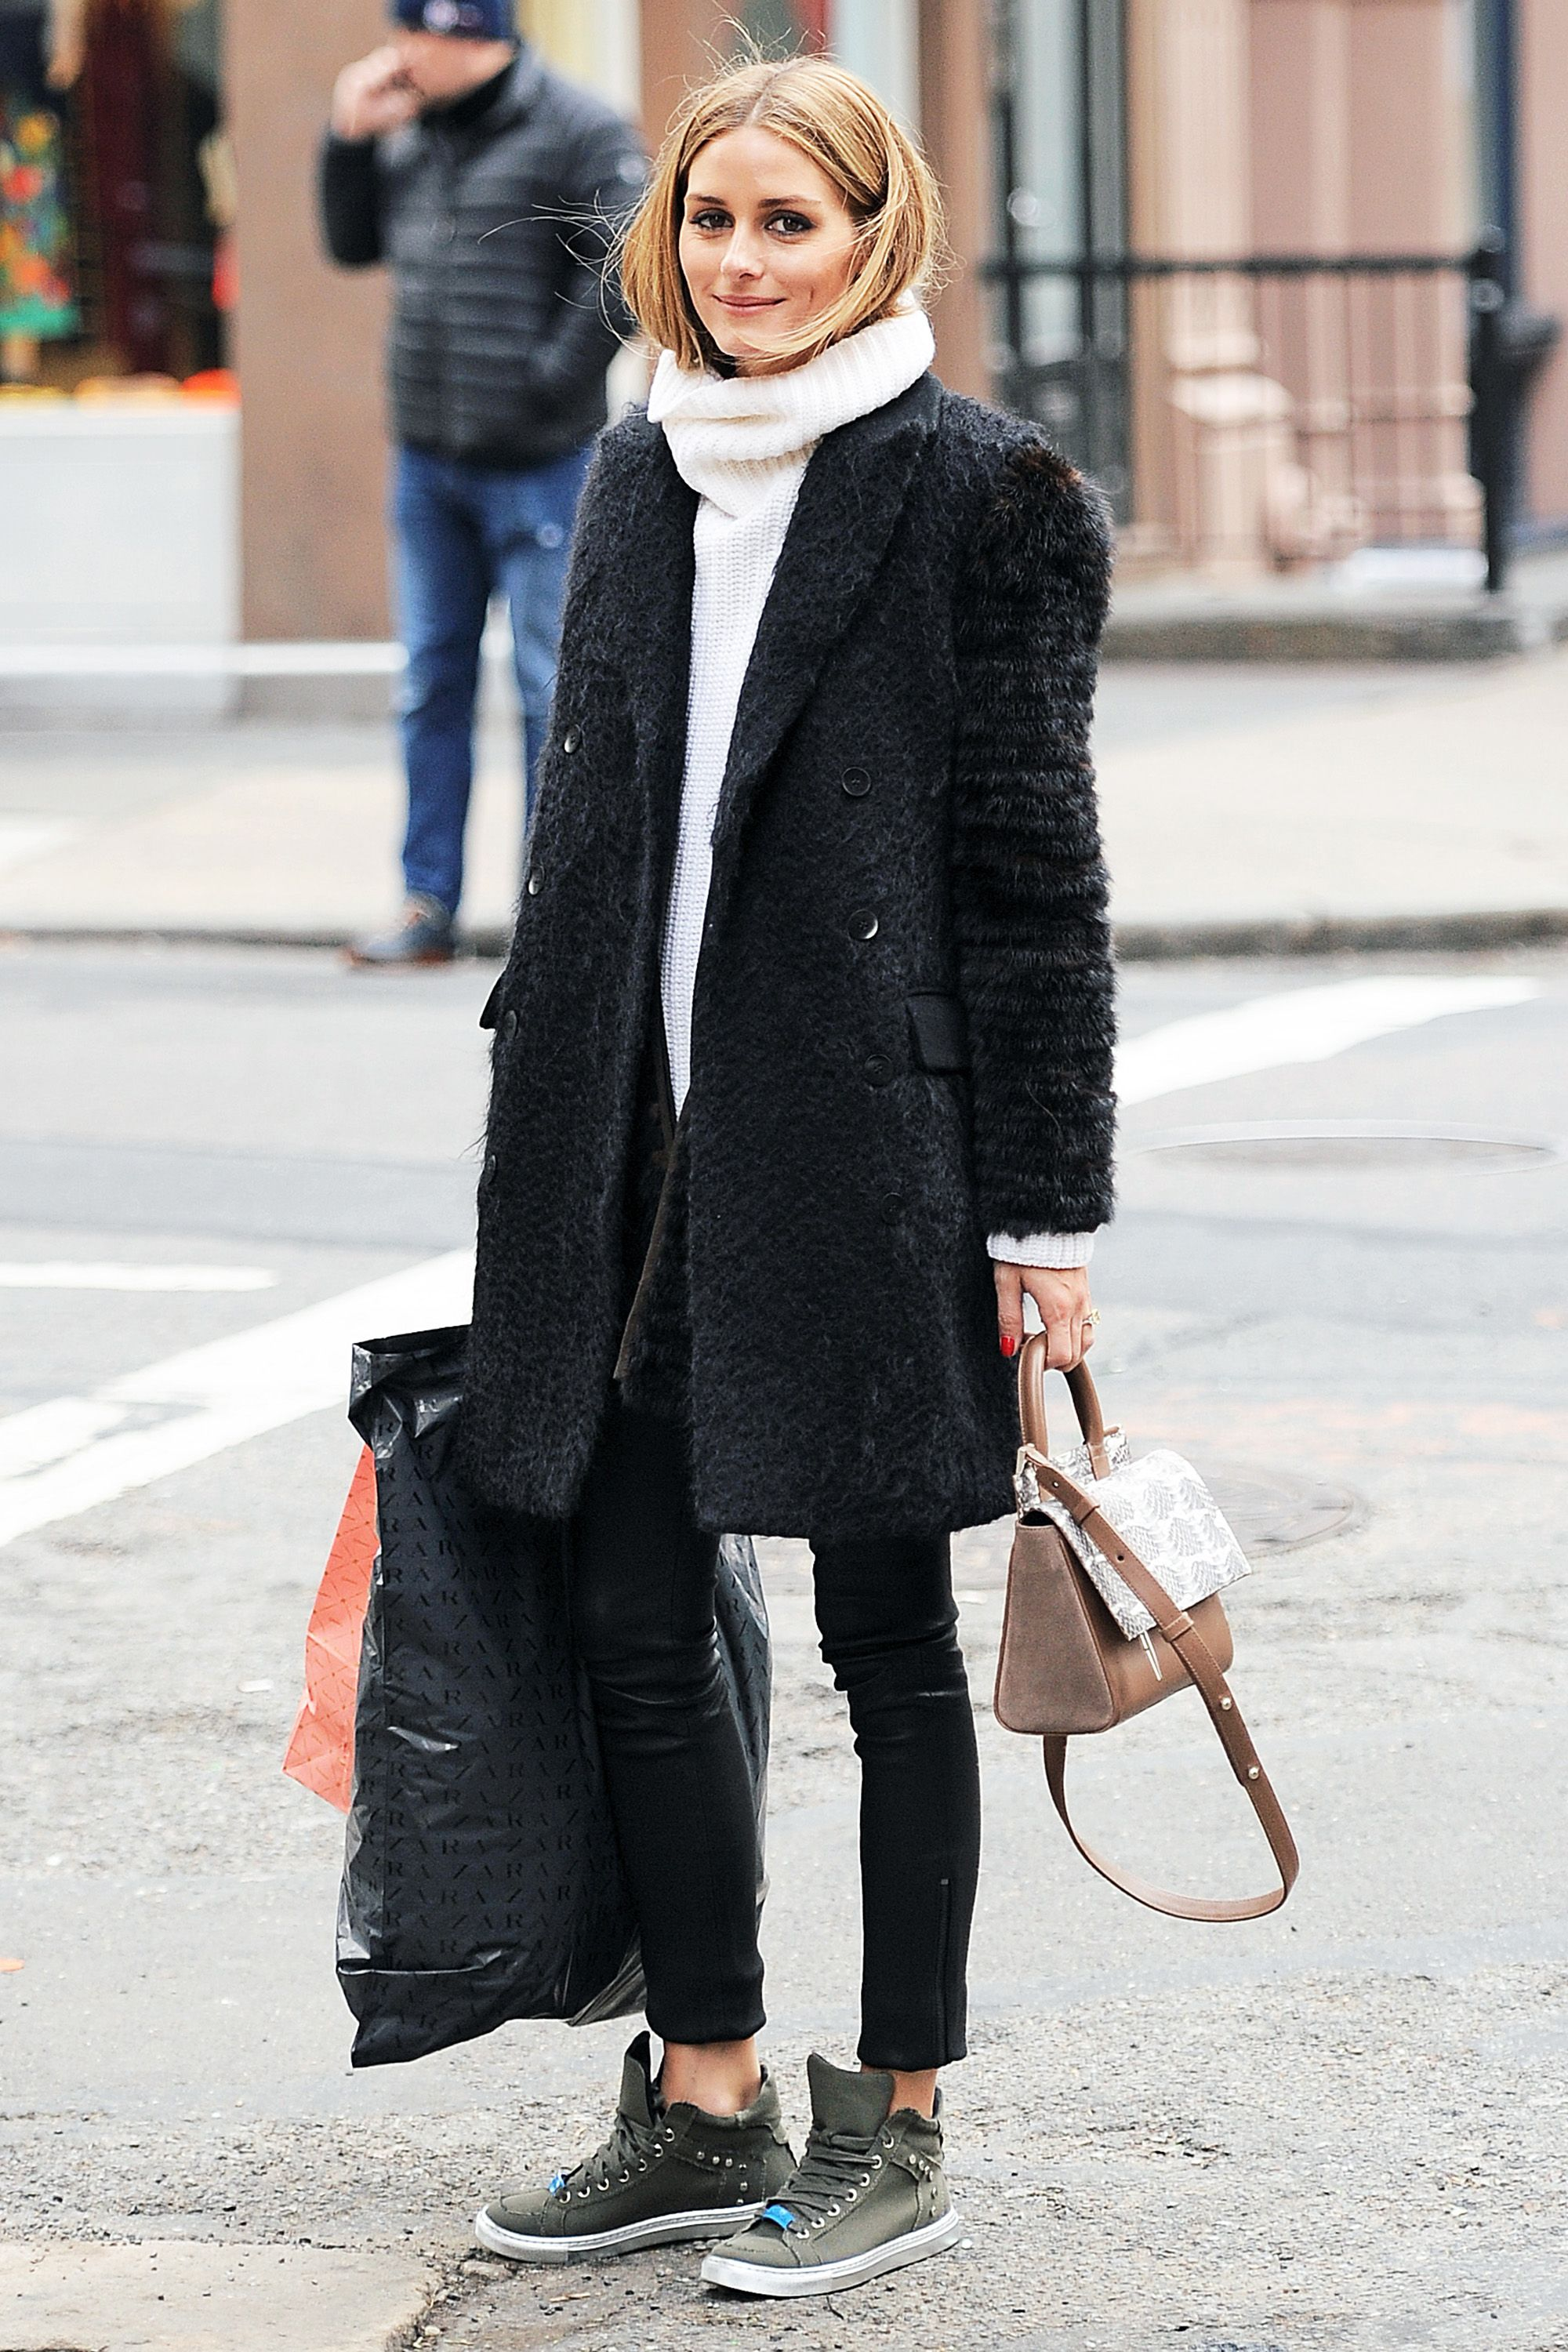 95d896fe67f7a 50 Turtleneck Outfits for a Chic Winter Look - How To Wear A Turtleneck  Sweater